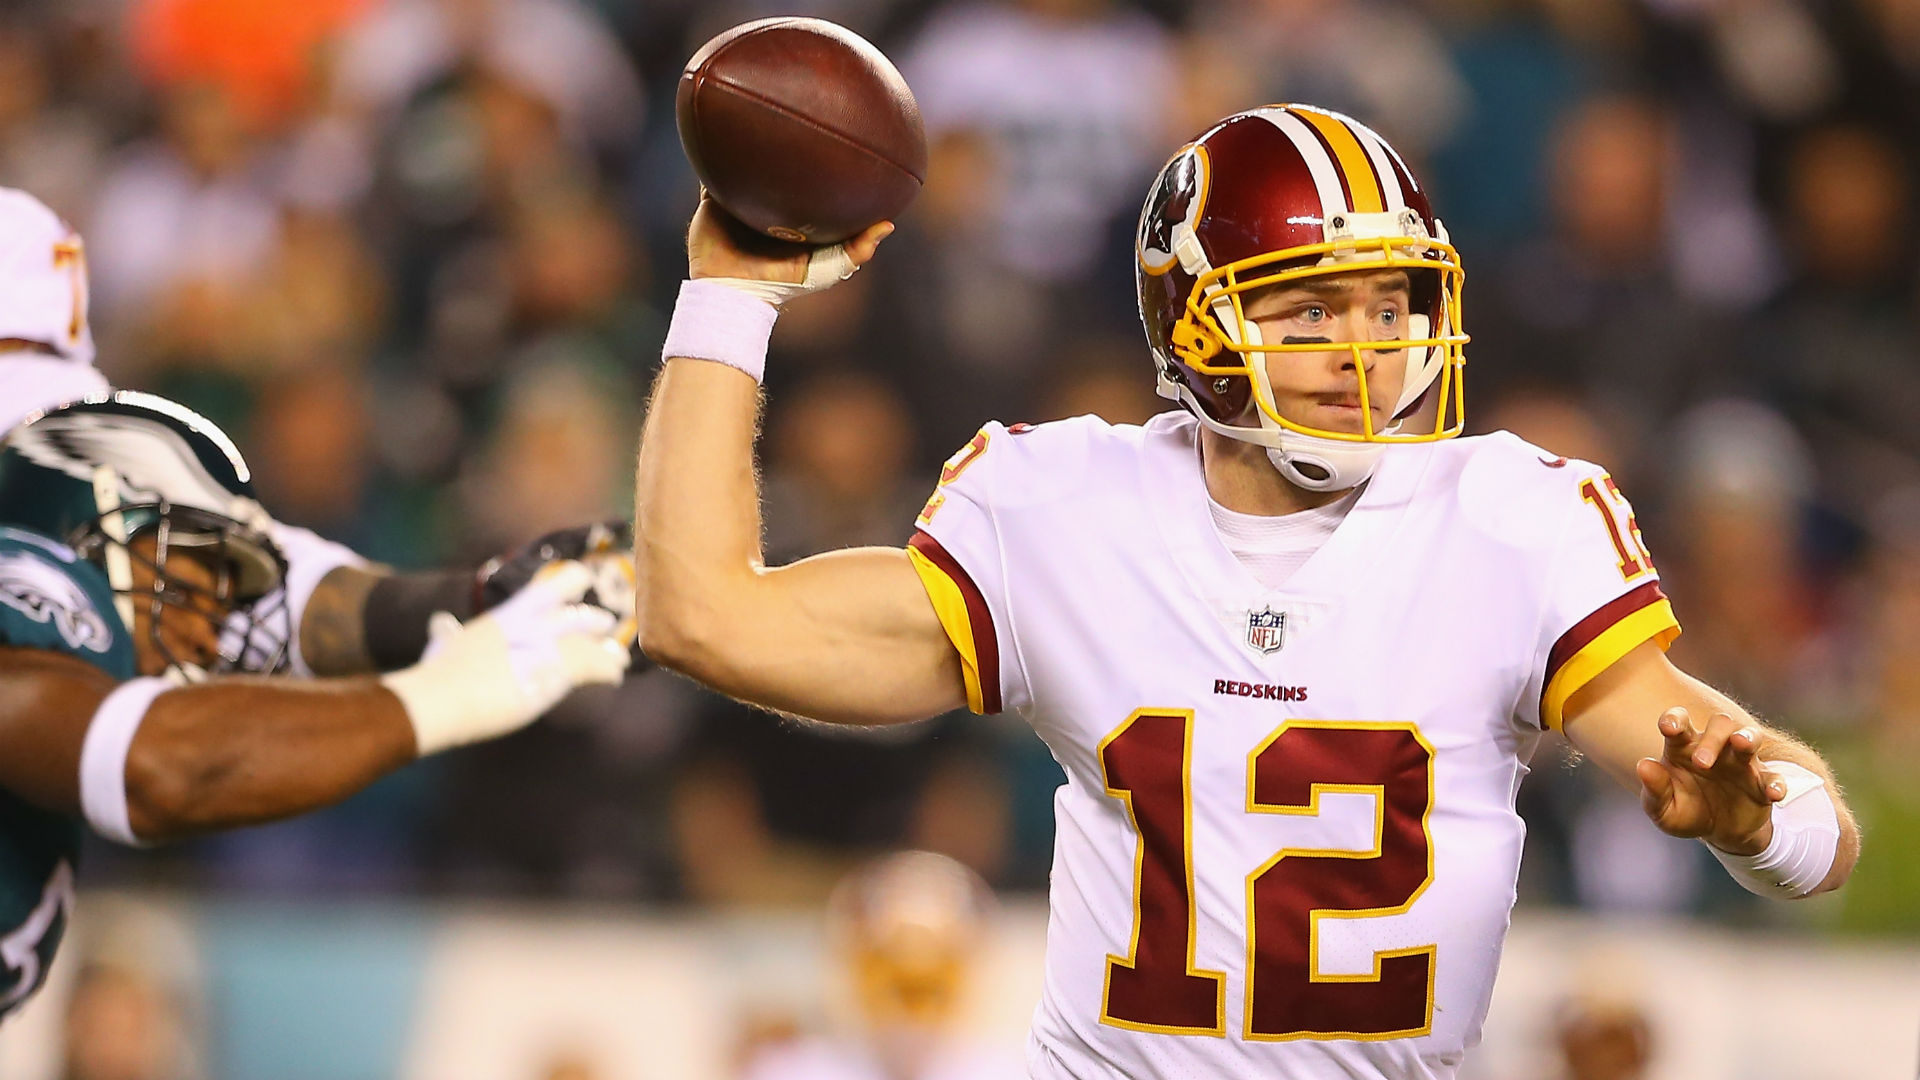 Redskins quarterback Colt McCoy out for season with broken right leg